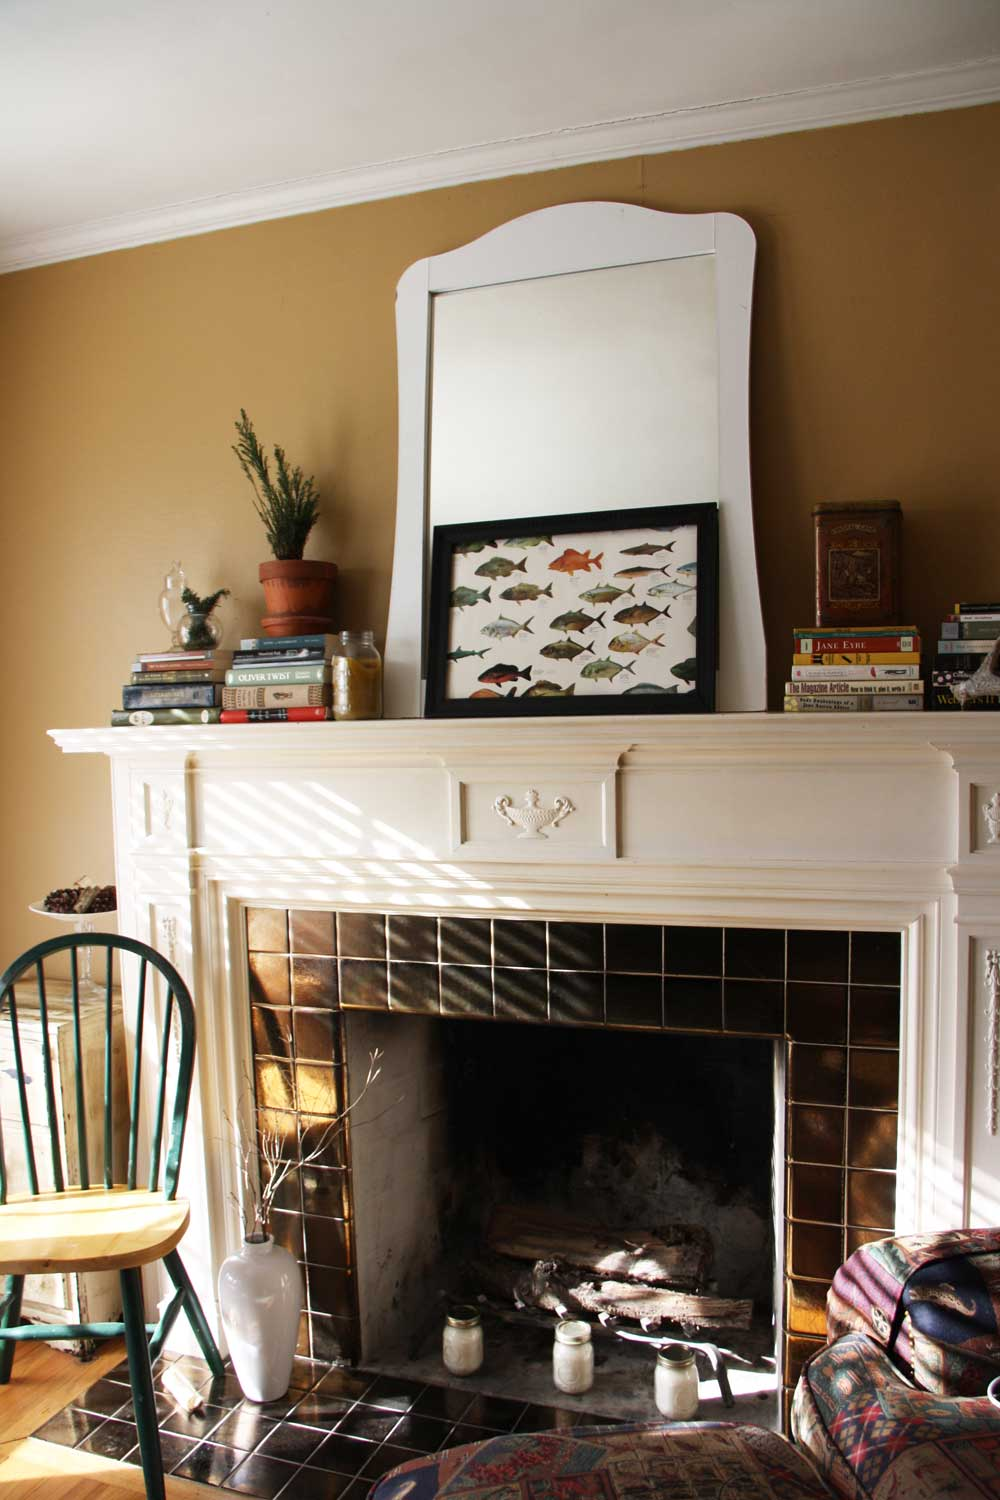 Cute fireplace mantle display | redleafstyle.com